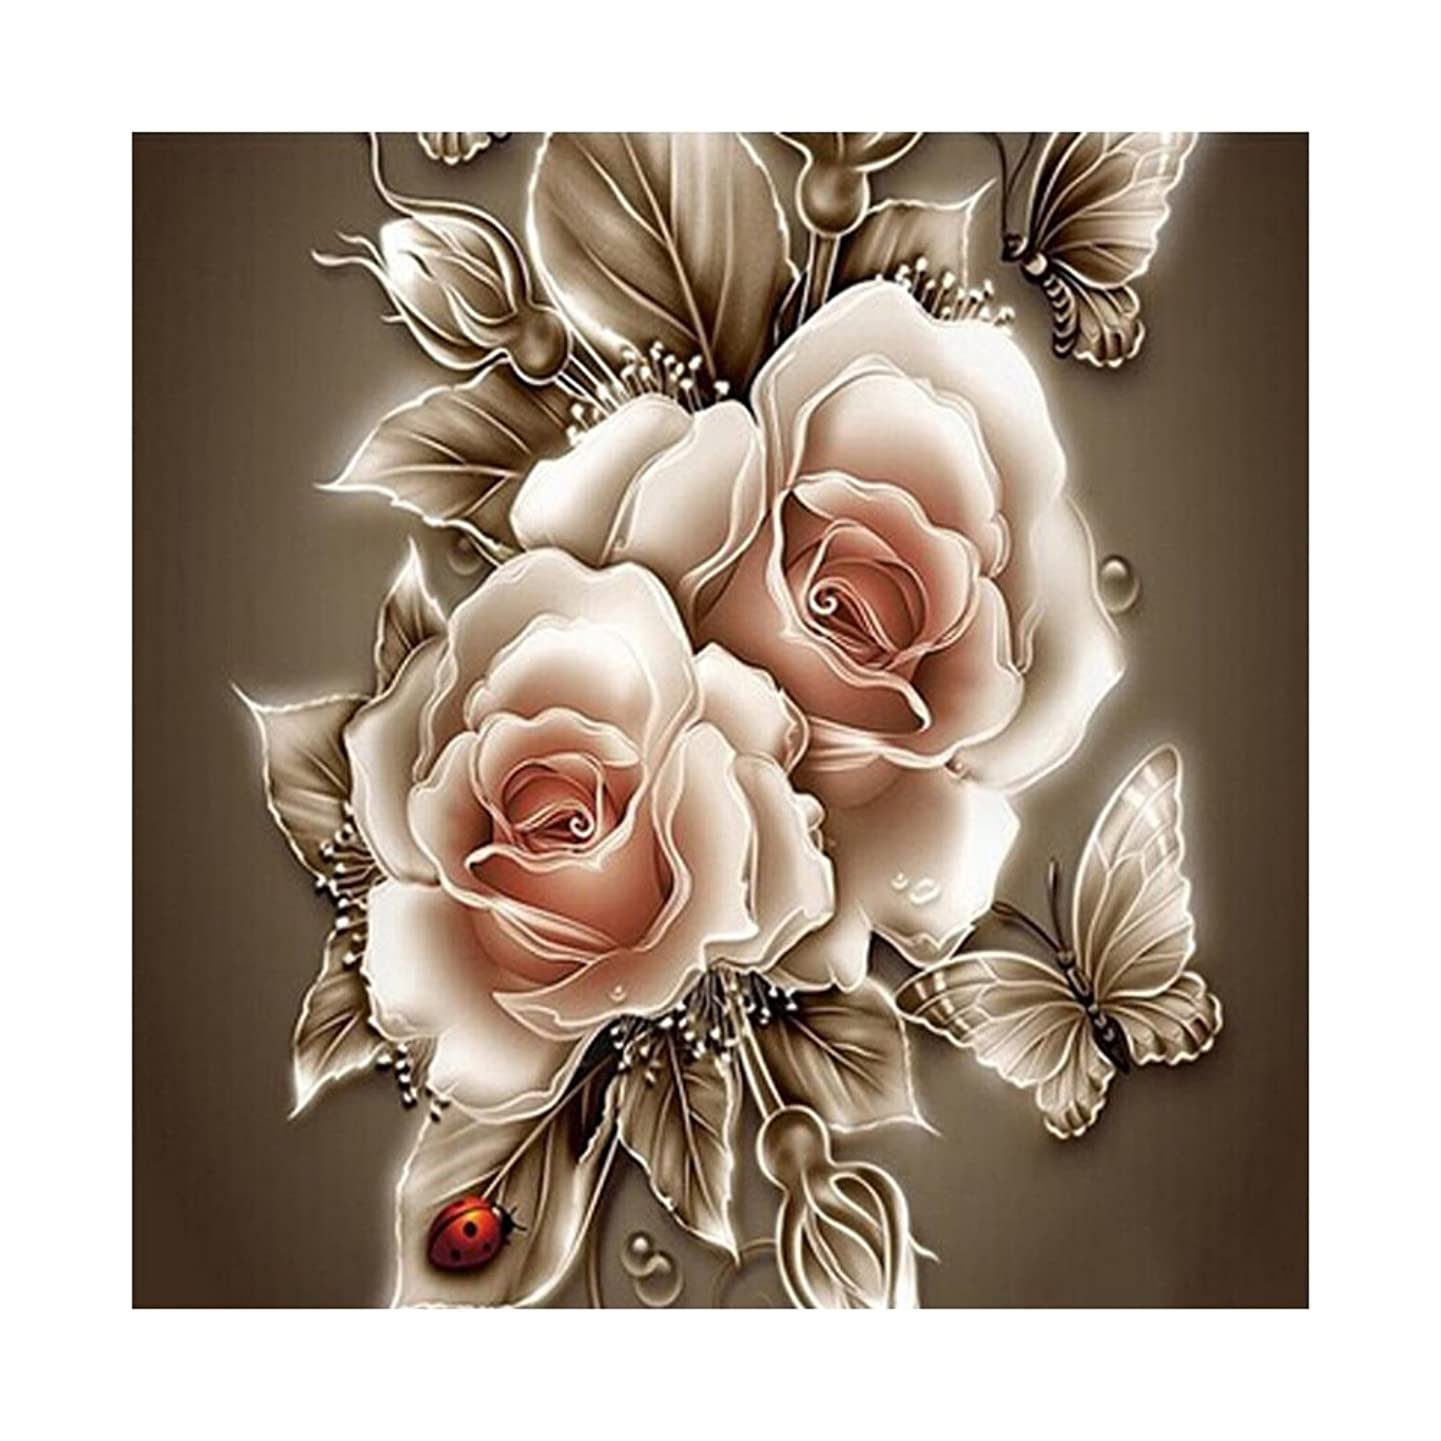 DIY Diamond Painting by Number Kit, 5D Full Drill Crystal Cross Stitch Set, Rhinestone Embroidery Art Craft, Home Wall Decorative Accessories for Living Room - 3535cm - Retro Roses